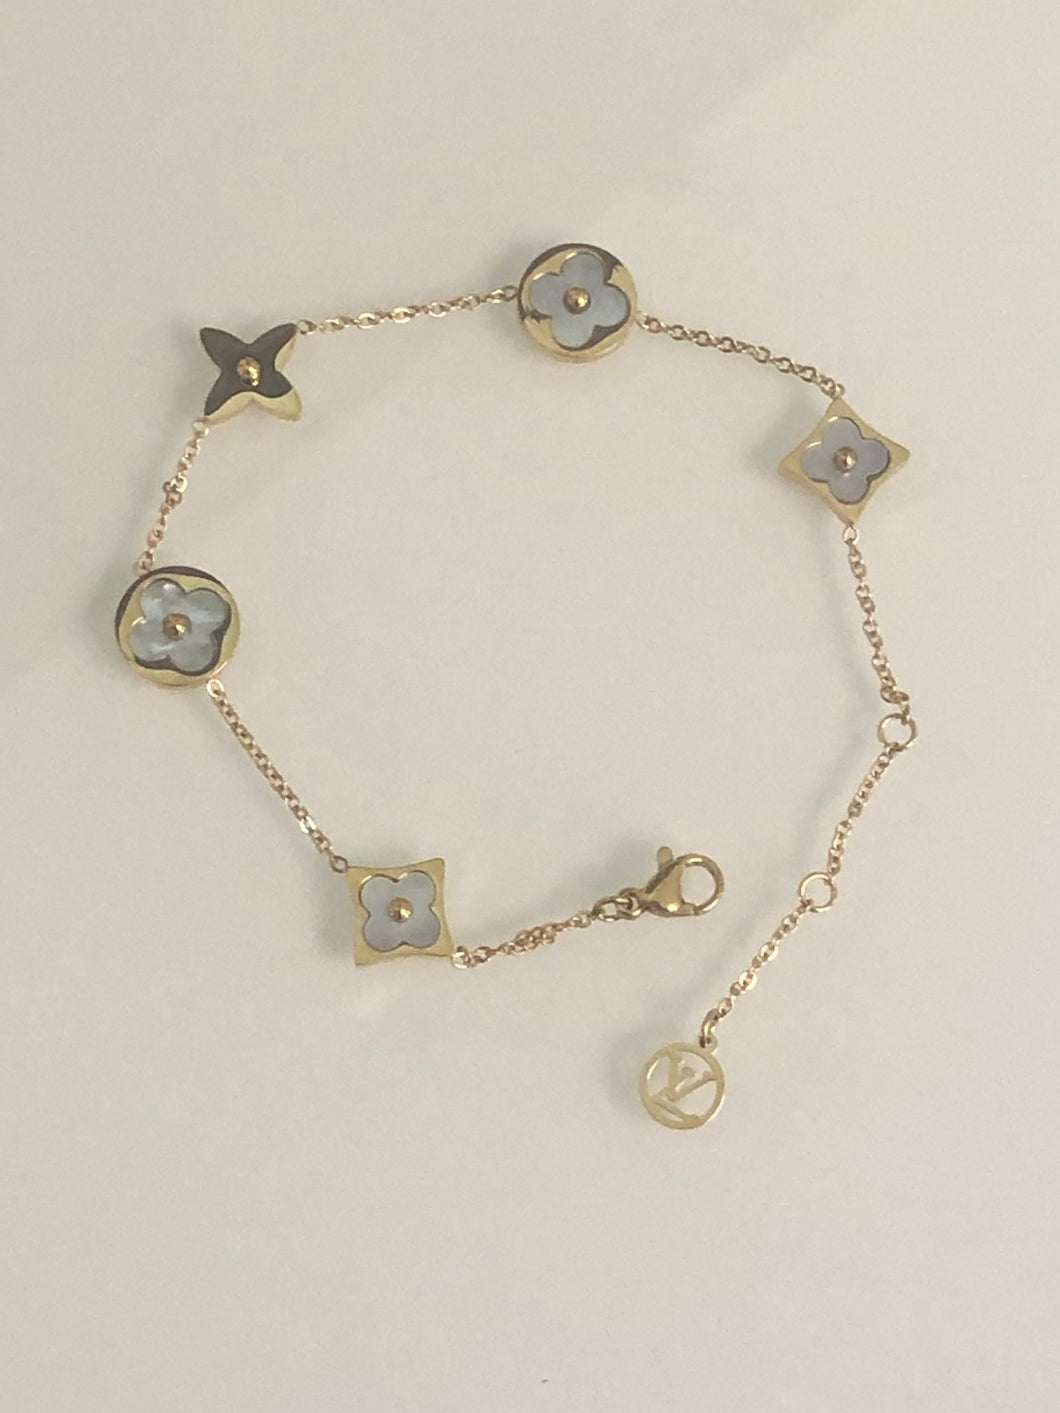 Mother of Pearl Flower Blossom Bracelet in Yellow Gold Titanium Adjustable